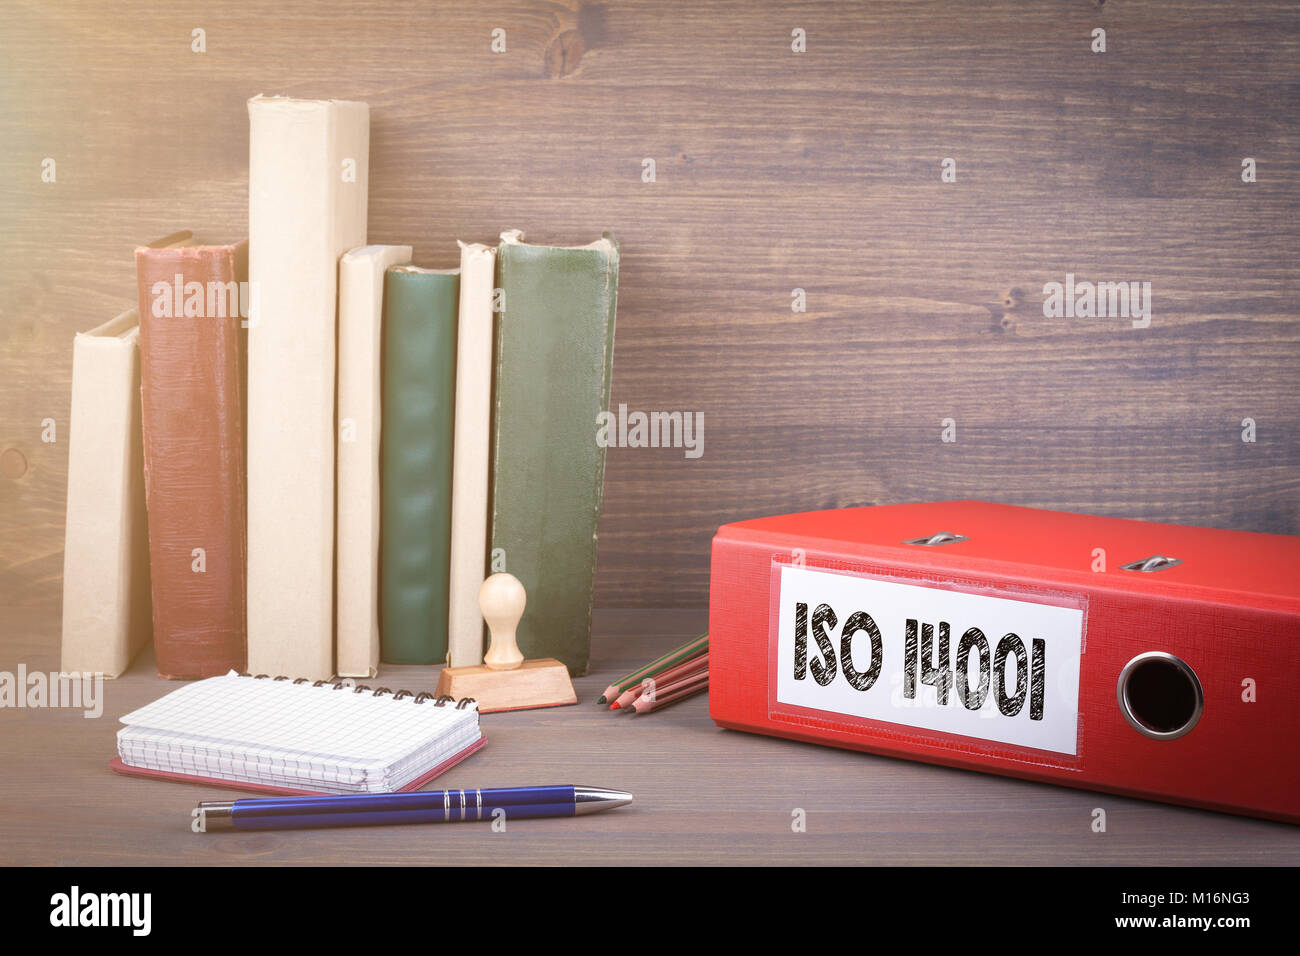 ISO 14001. Binder on desk in the office. Business background - Stock Image